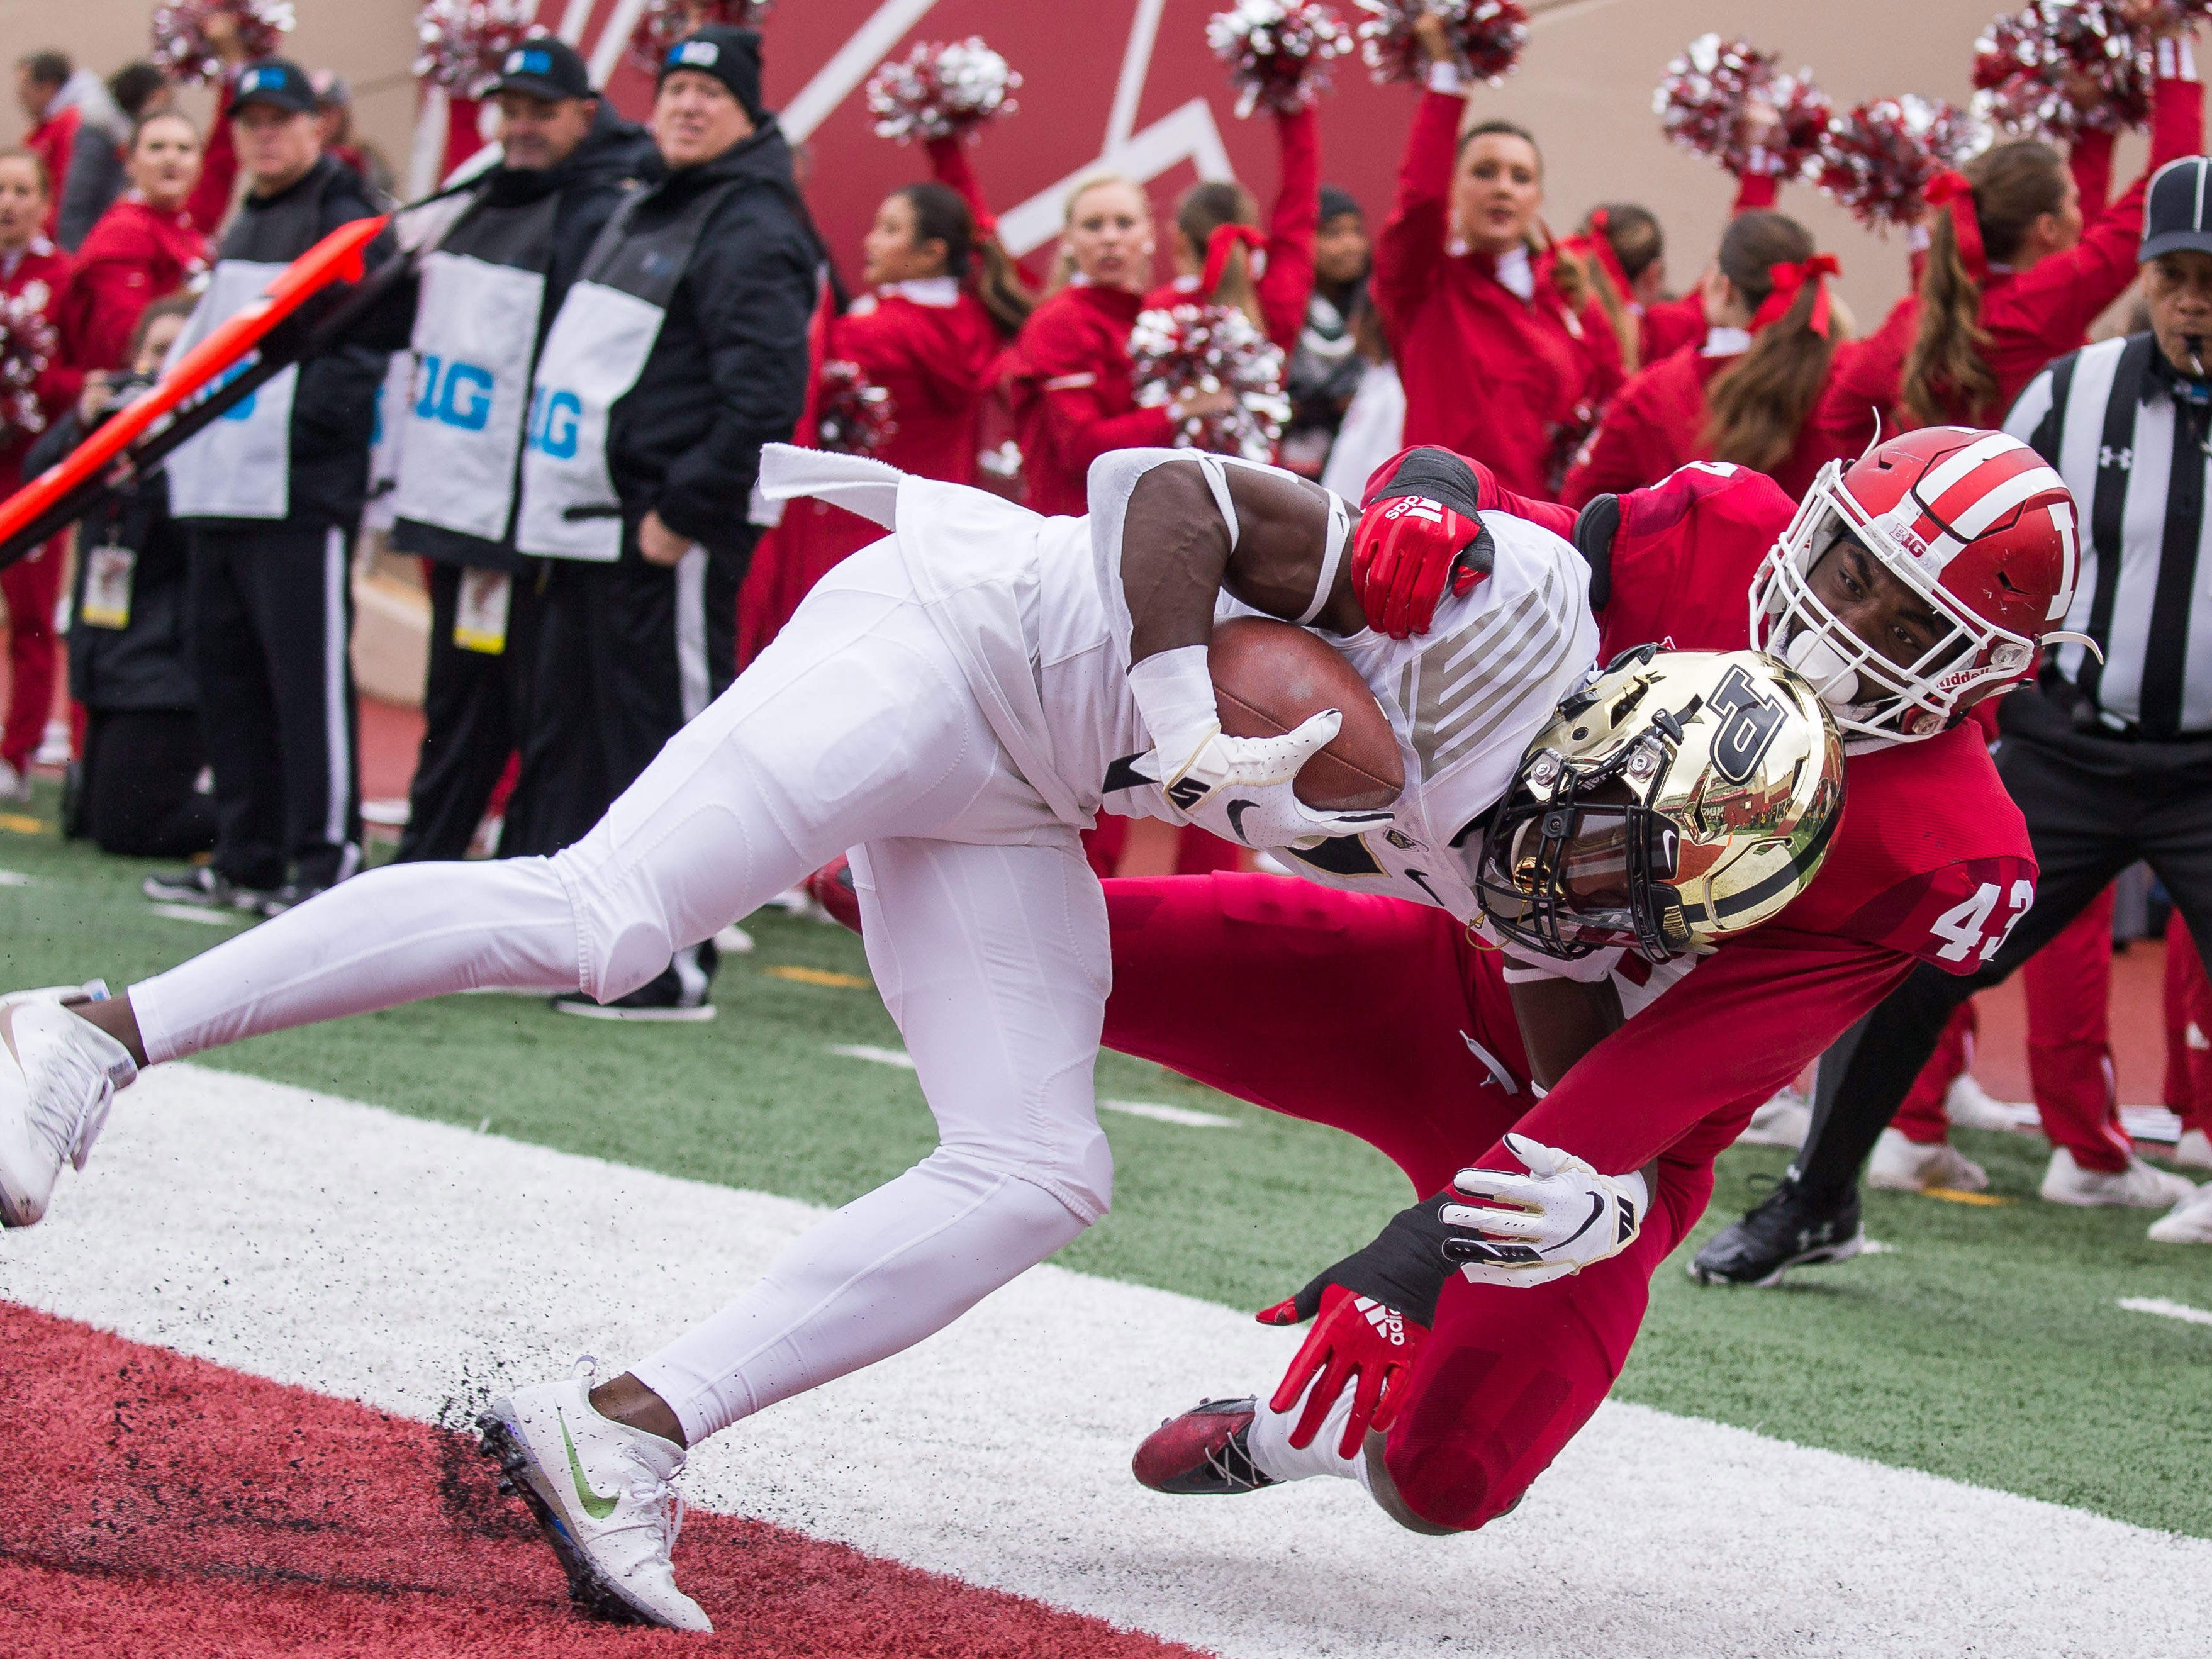 Purdue Boilermakers wide receiver Isaac Zico (7) catches a touchdown against Indiana Hoosiers linebacker Dameon Willis Jr. (43) in the first quarter at Memorial Stadium.